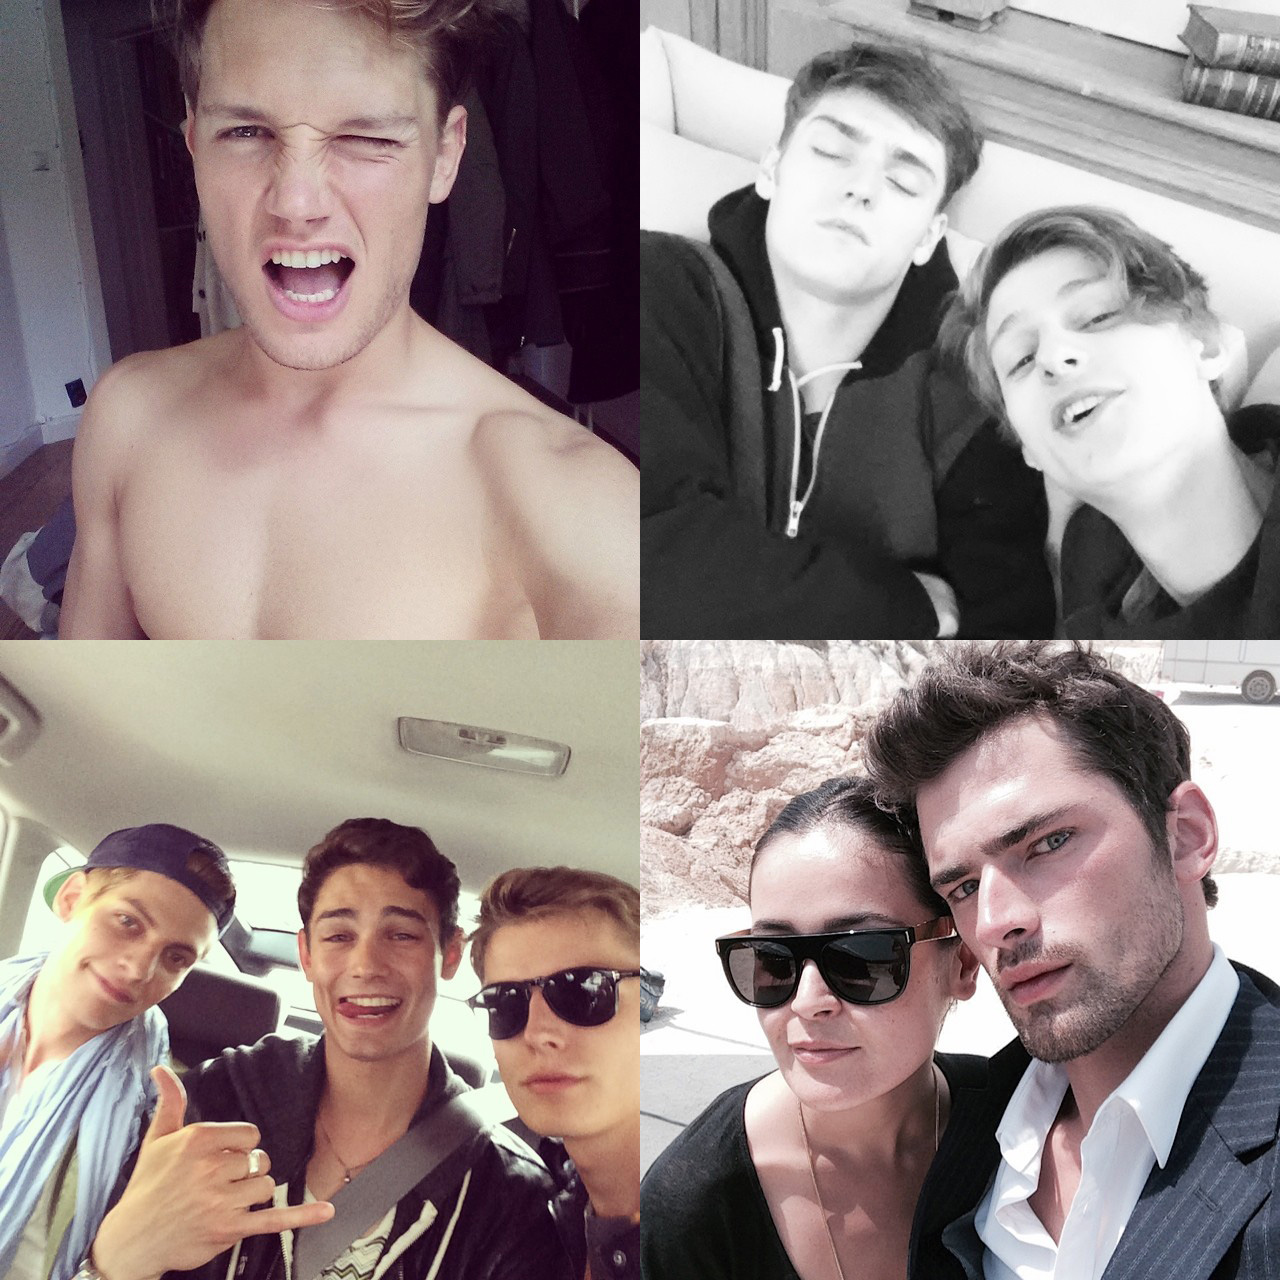 Instagram Photos of the Week: David Gandy, Arthur Gosse, Sean O'Pry + More